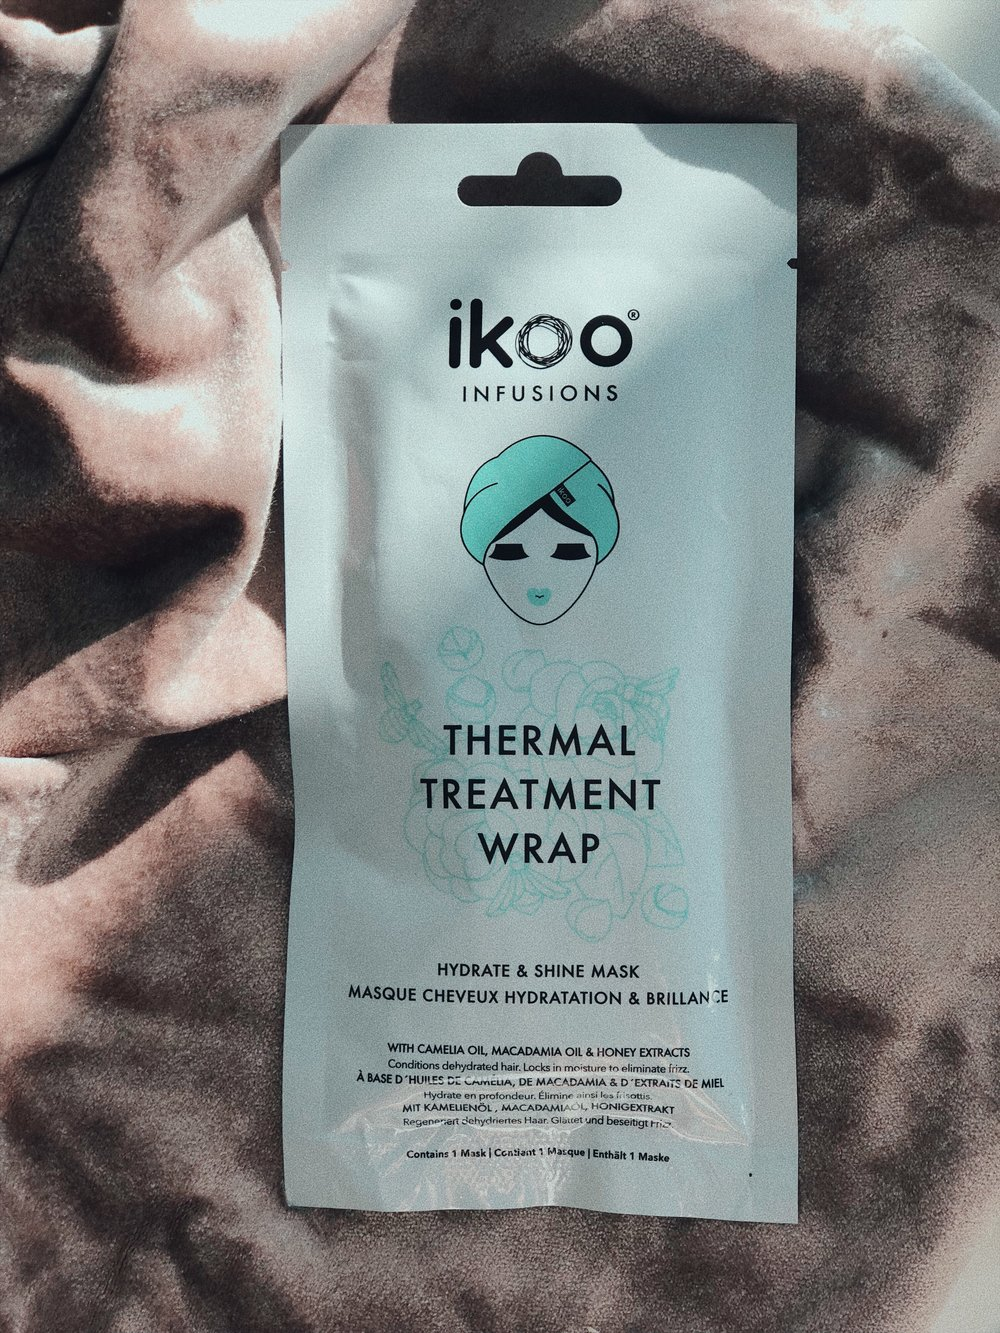 I'VE BEEN GETTING INTO HAIR WRAPS LIGHTLY, BECAUSE JUST LIKE A SHEET MASK THEY ARE JUST SO CONVENIENT AND ALSO AMAZING TO TRAVEL WITH. THE   THERMAL TREATMENT WRAP   FOR SHINE AND HYDRATION BY IKOO IS THE BEST ONE I'VE TRIED SO FAR, AS YOU KNOW I'M ALL ABOUT HYDRATION. – J